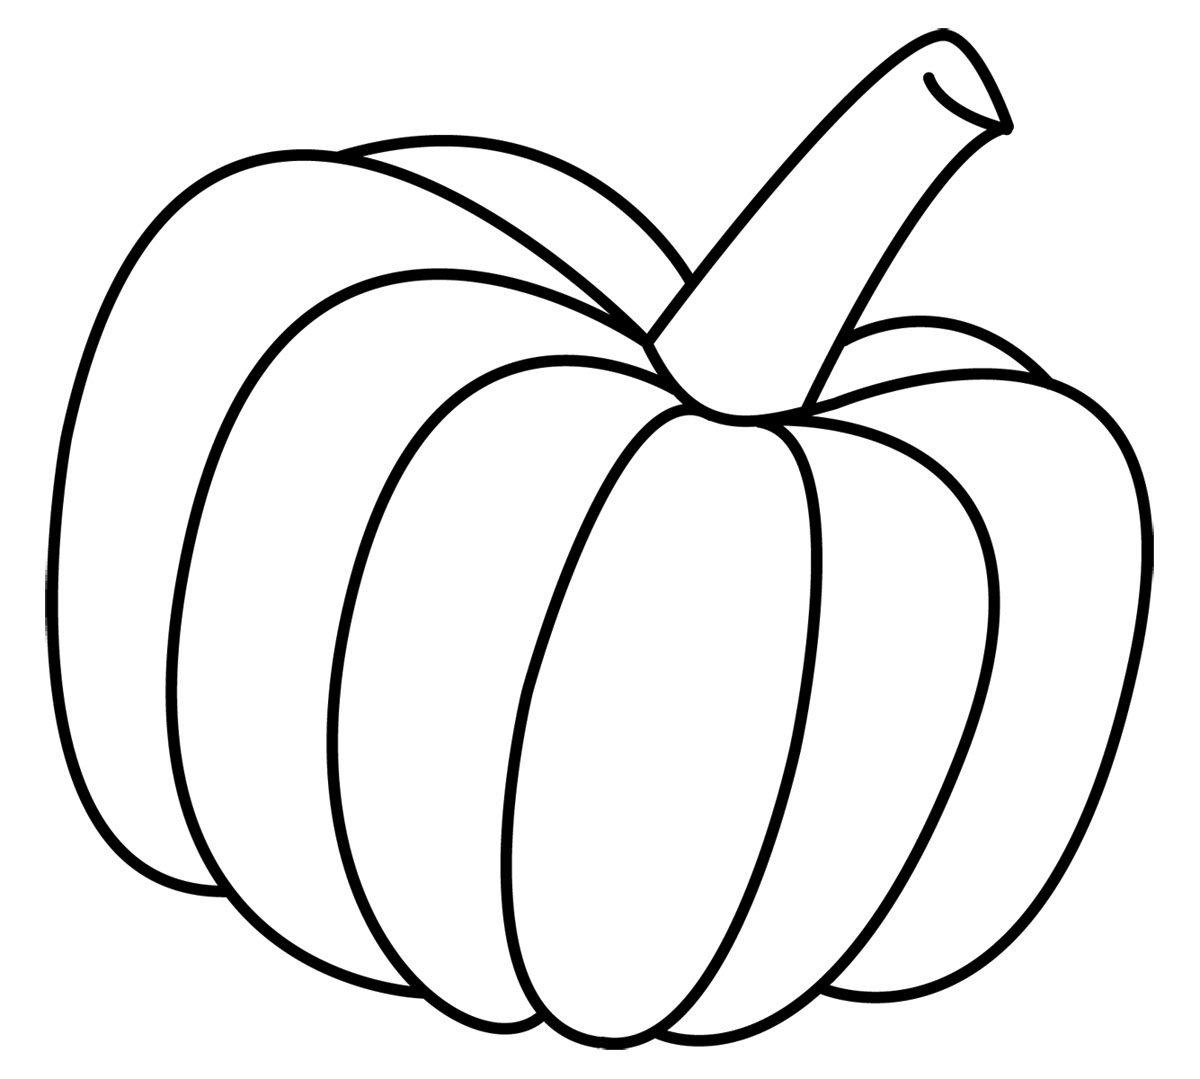 Best Pumpkin Outline Printable #22947 - Clipartion.com